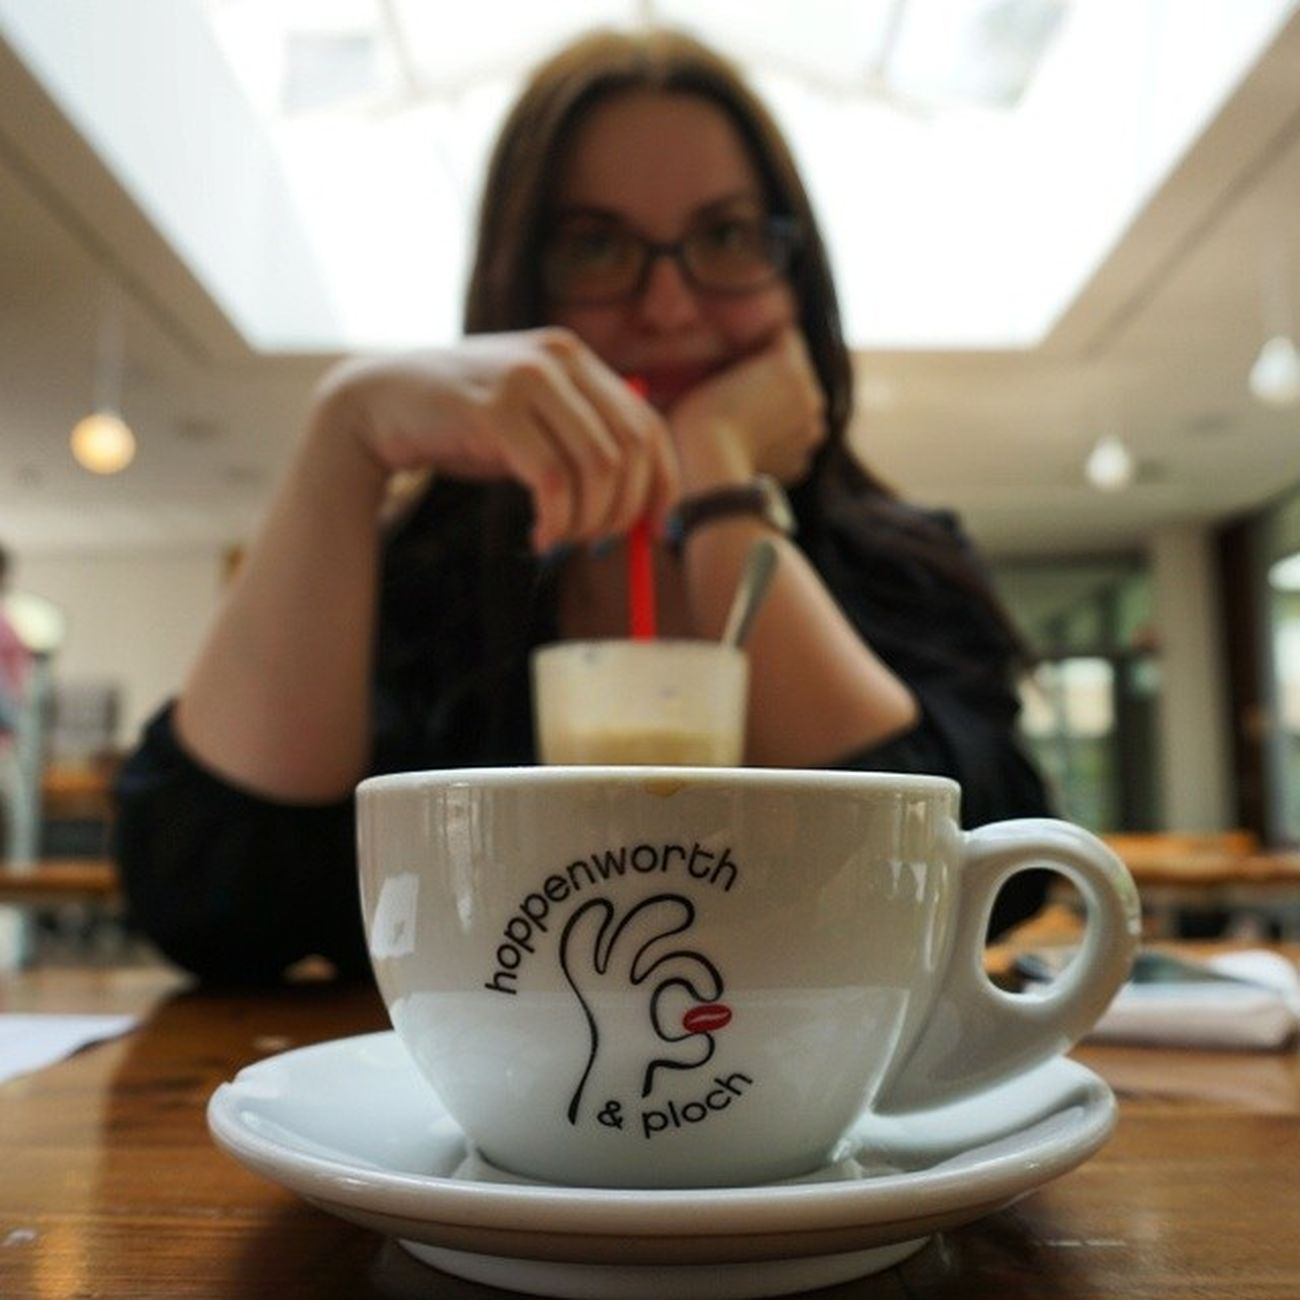 Der beste Kaffee der Stadt. Thisisffm Ffm365 Meinfrankfurt The Portraitist - 2014 EyeEm Awards Depth Of Field